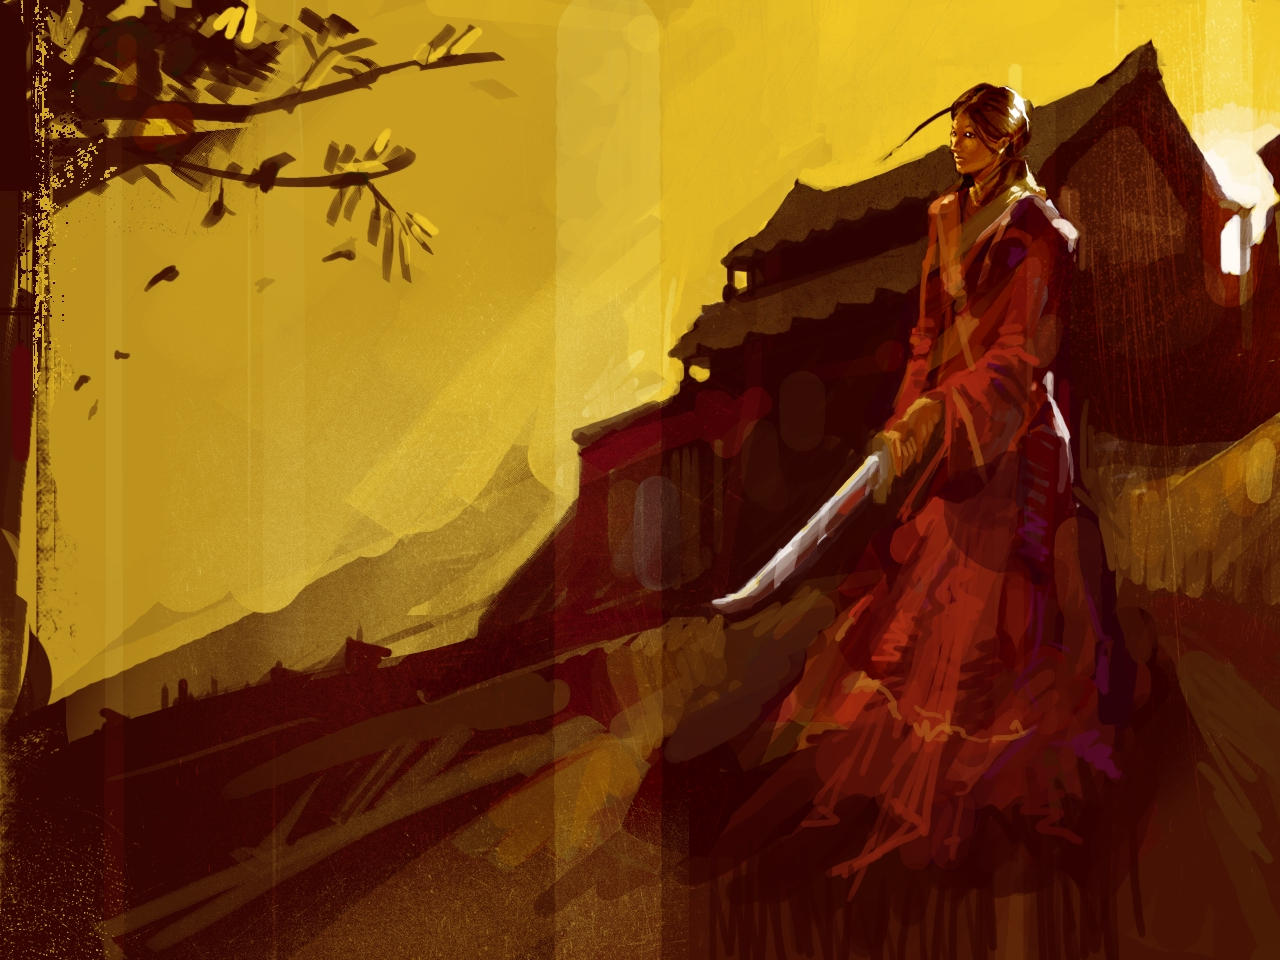 samurai girl by spx